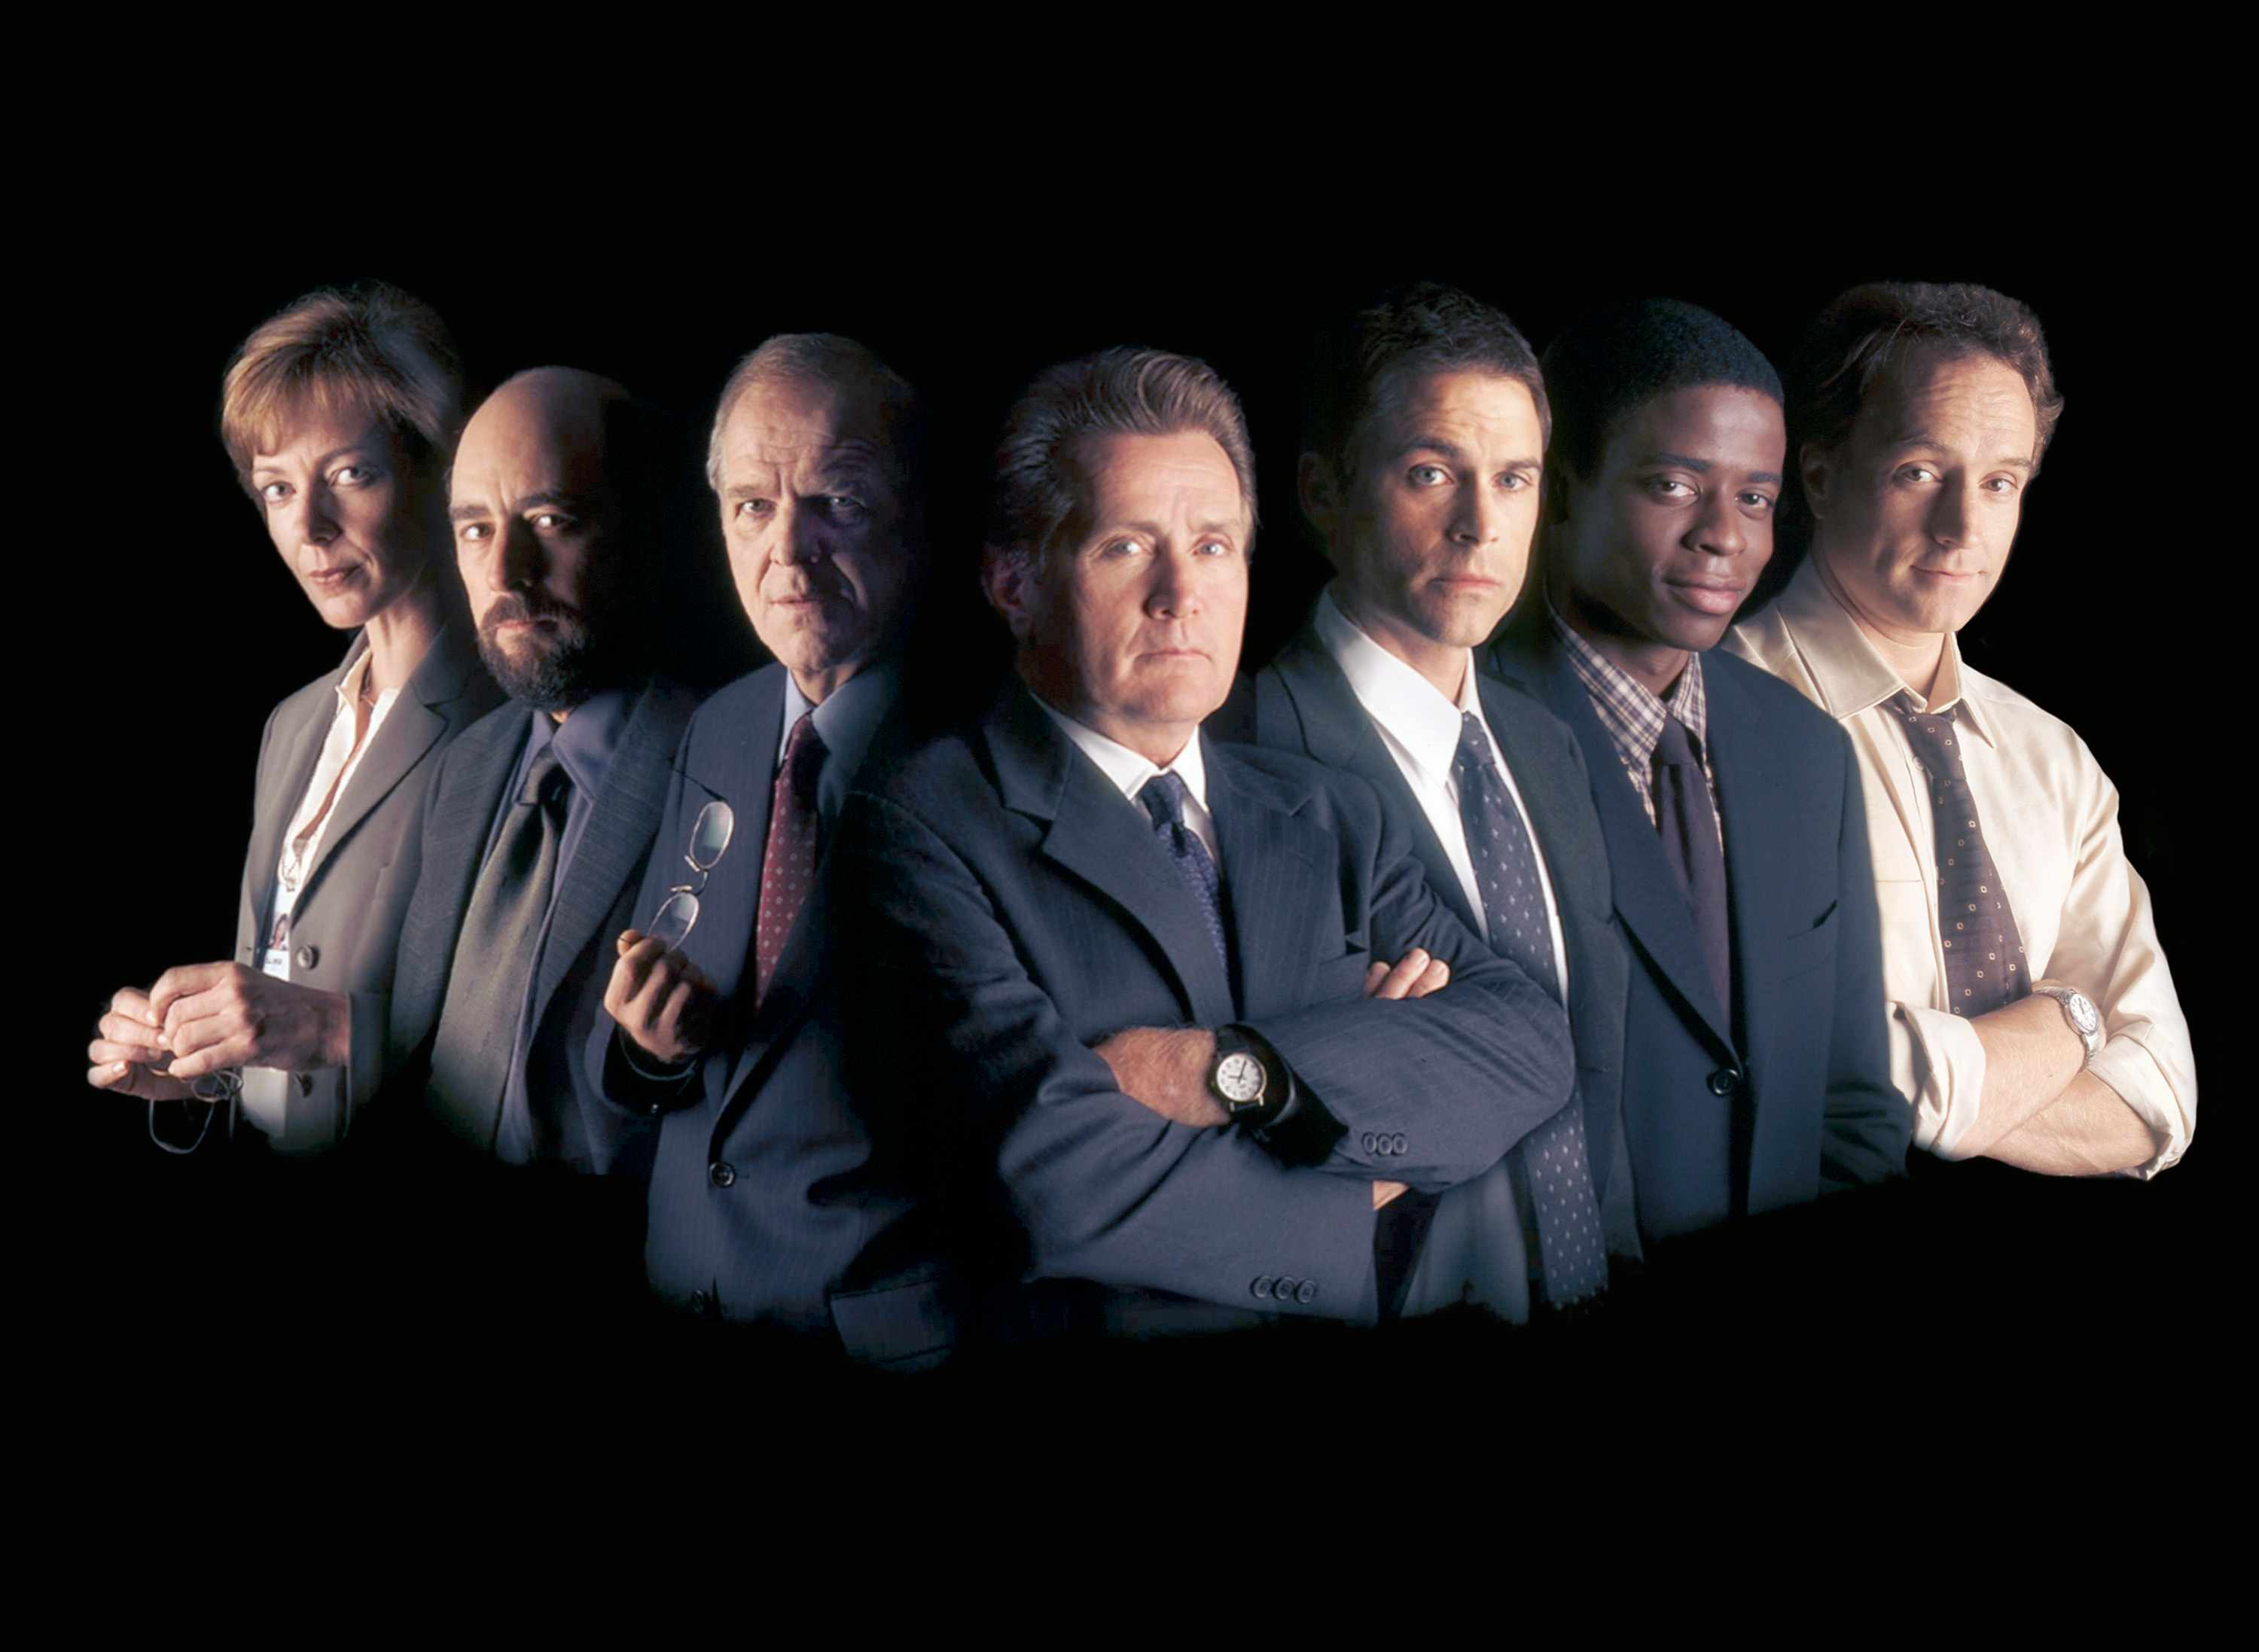 The cast of the first season of the west wing